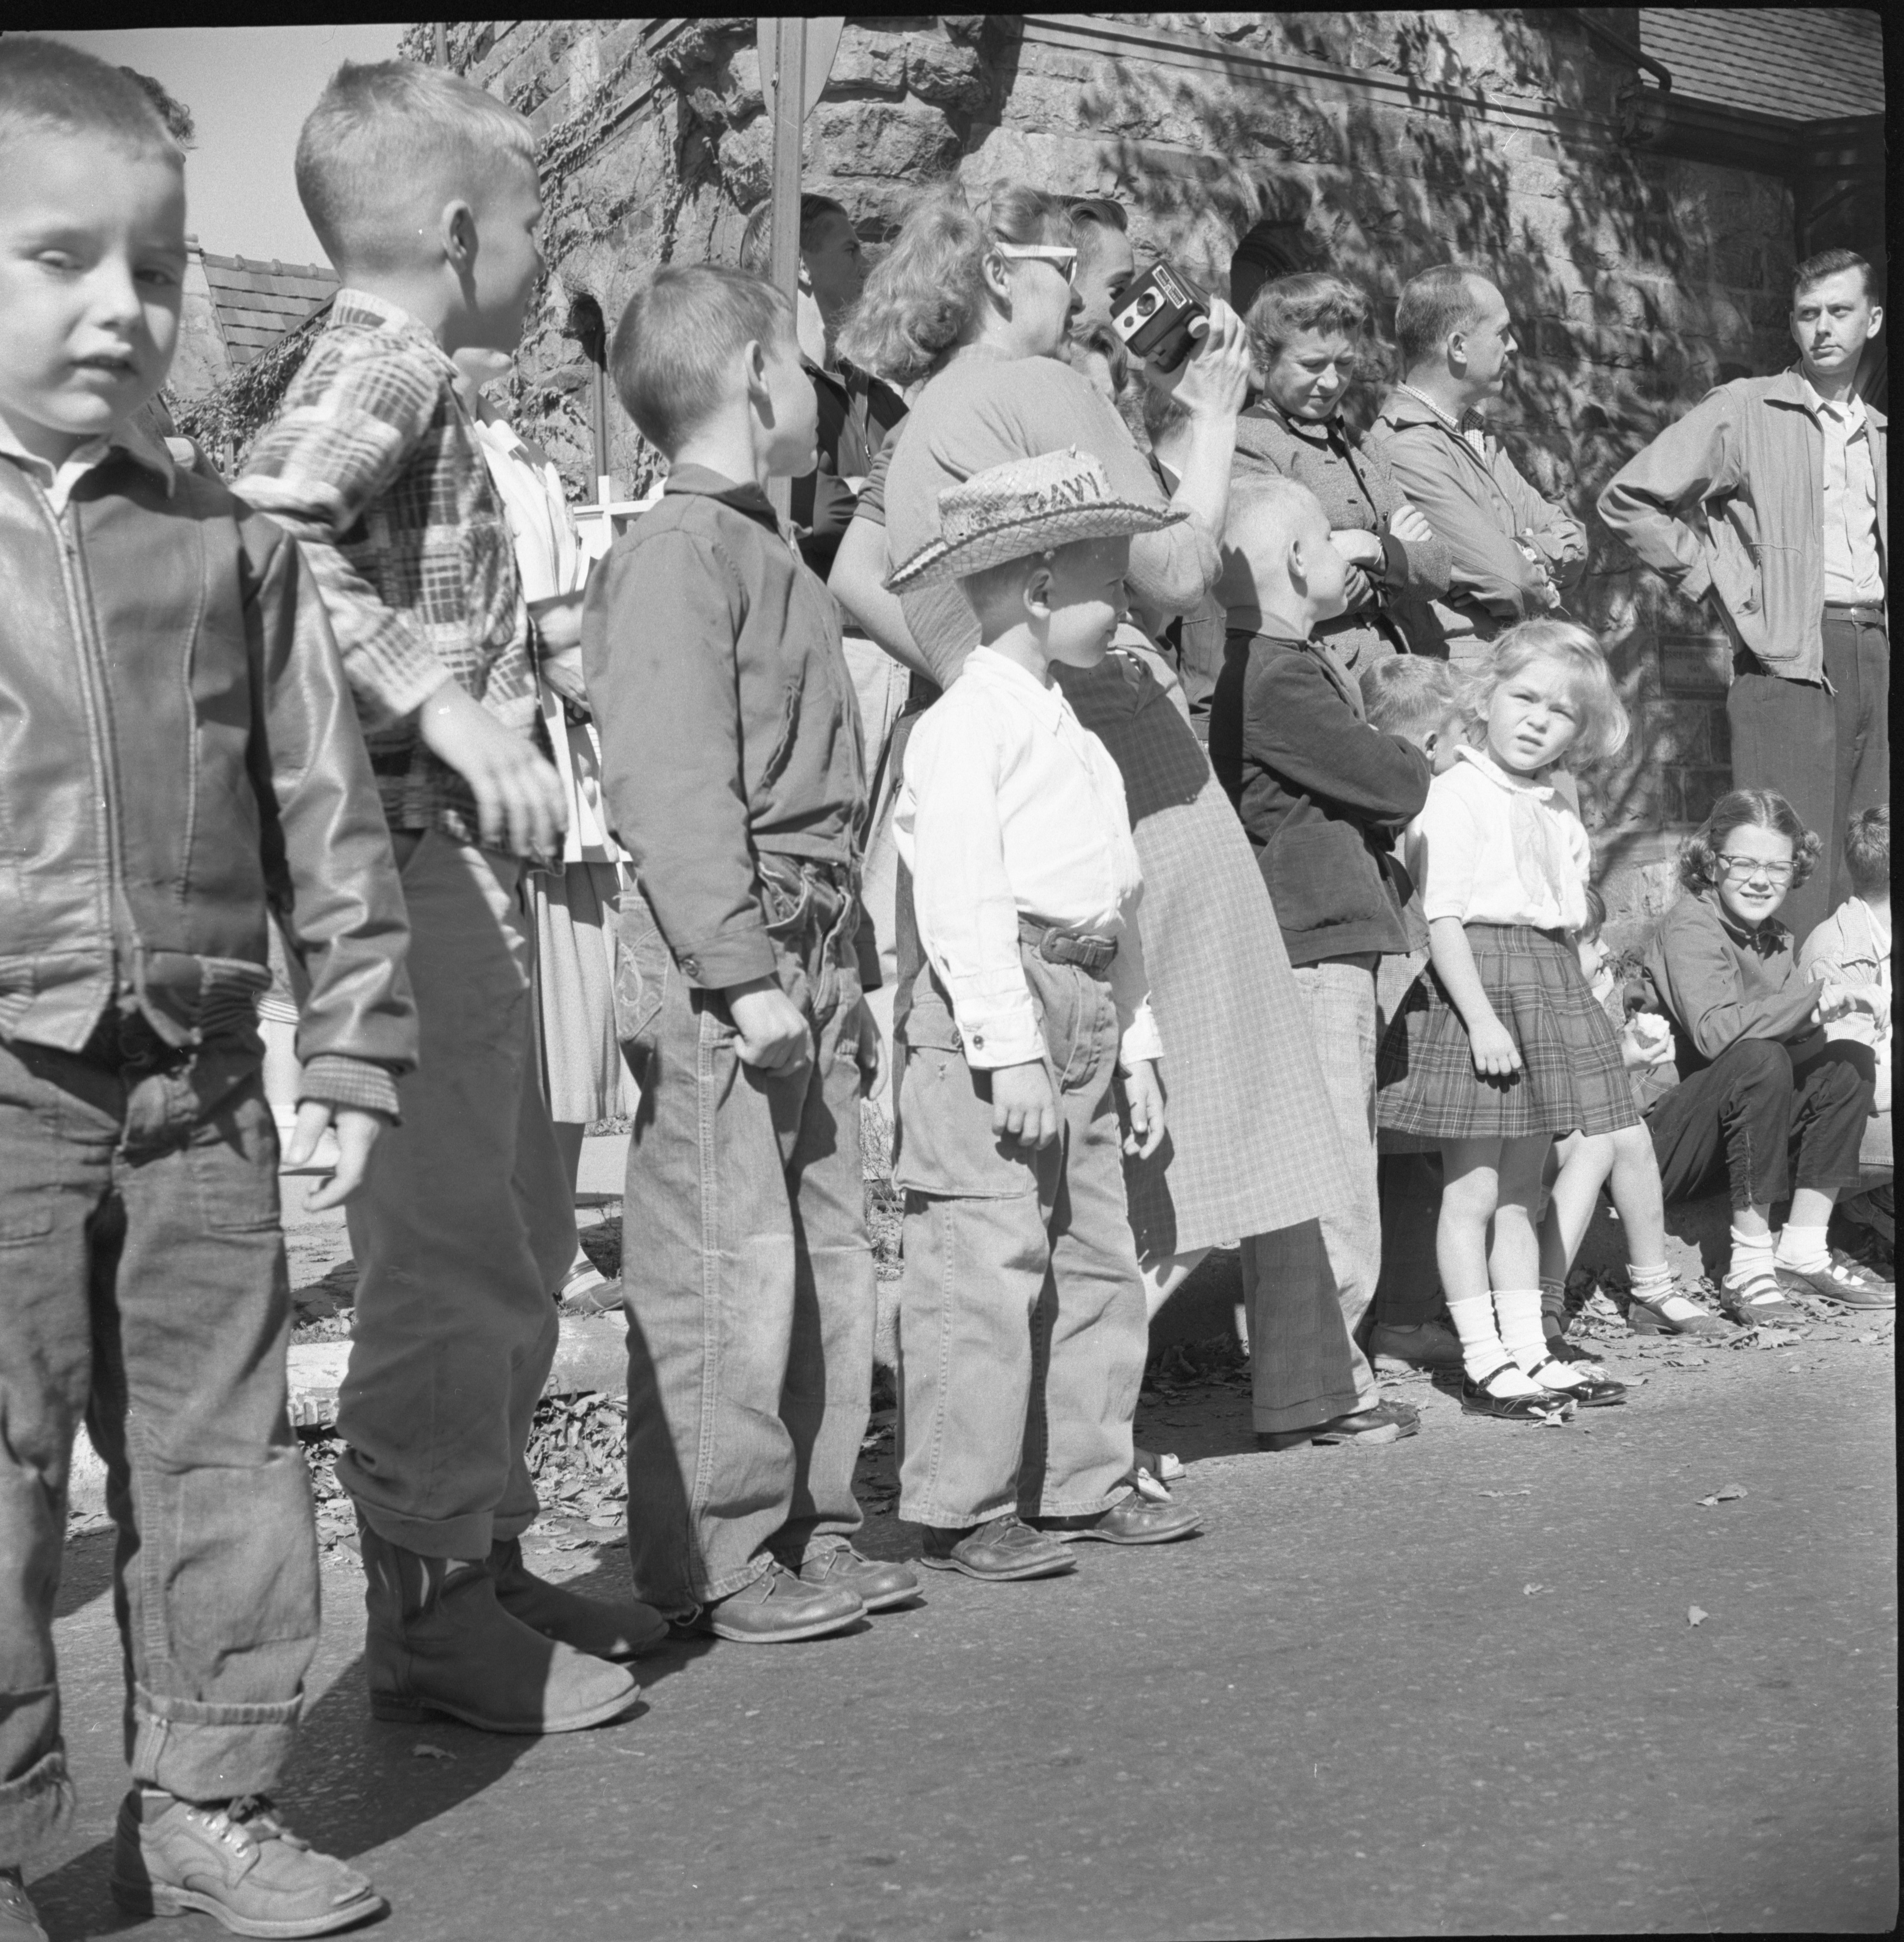 Spectators Wait For The Washtenaw County Building Dedication Parade, October 1956 image